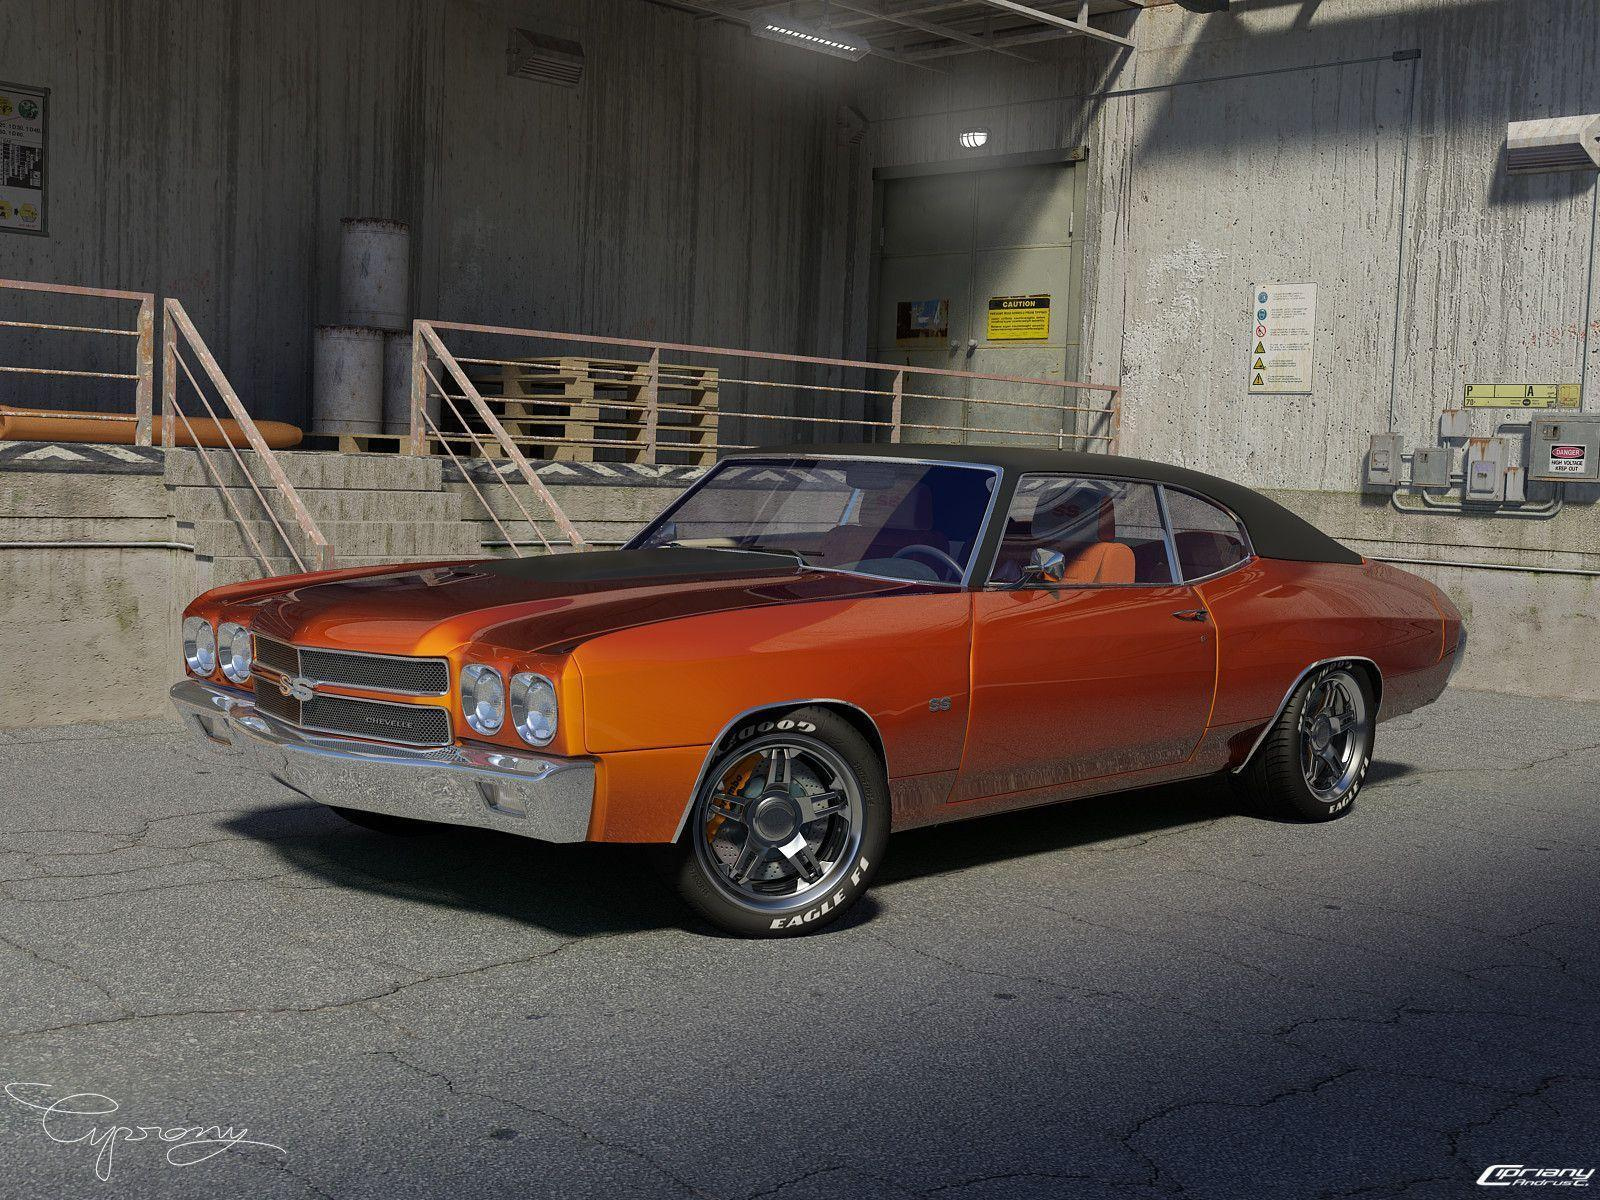 Full Hd Car Wallpapers 2014 Chevelle Ss Wallpapers Wallpaper Cave